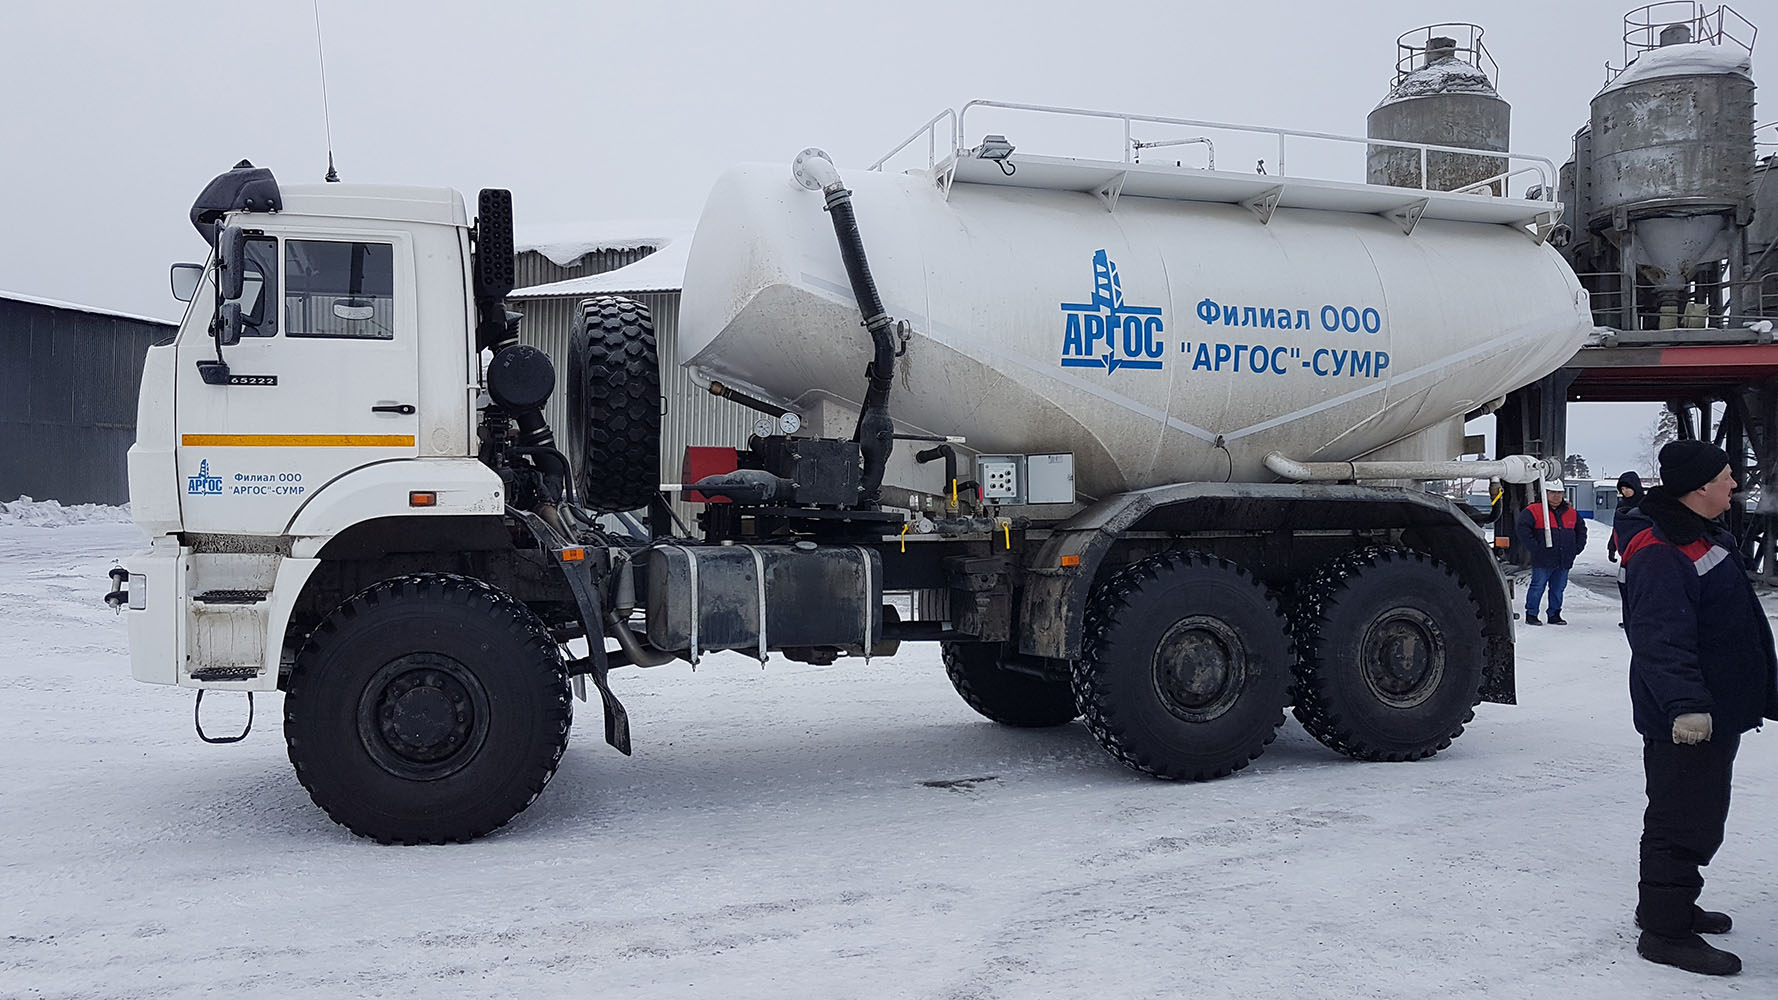 four wheel drive cement truck acv-17r1 in conditions of severe north weather